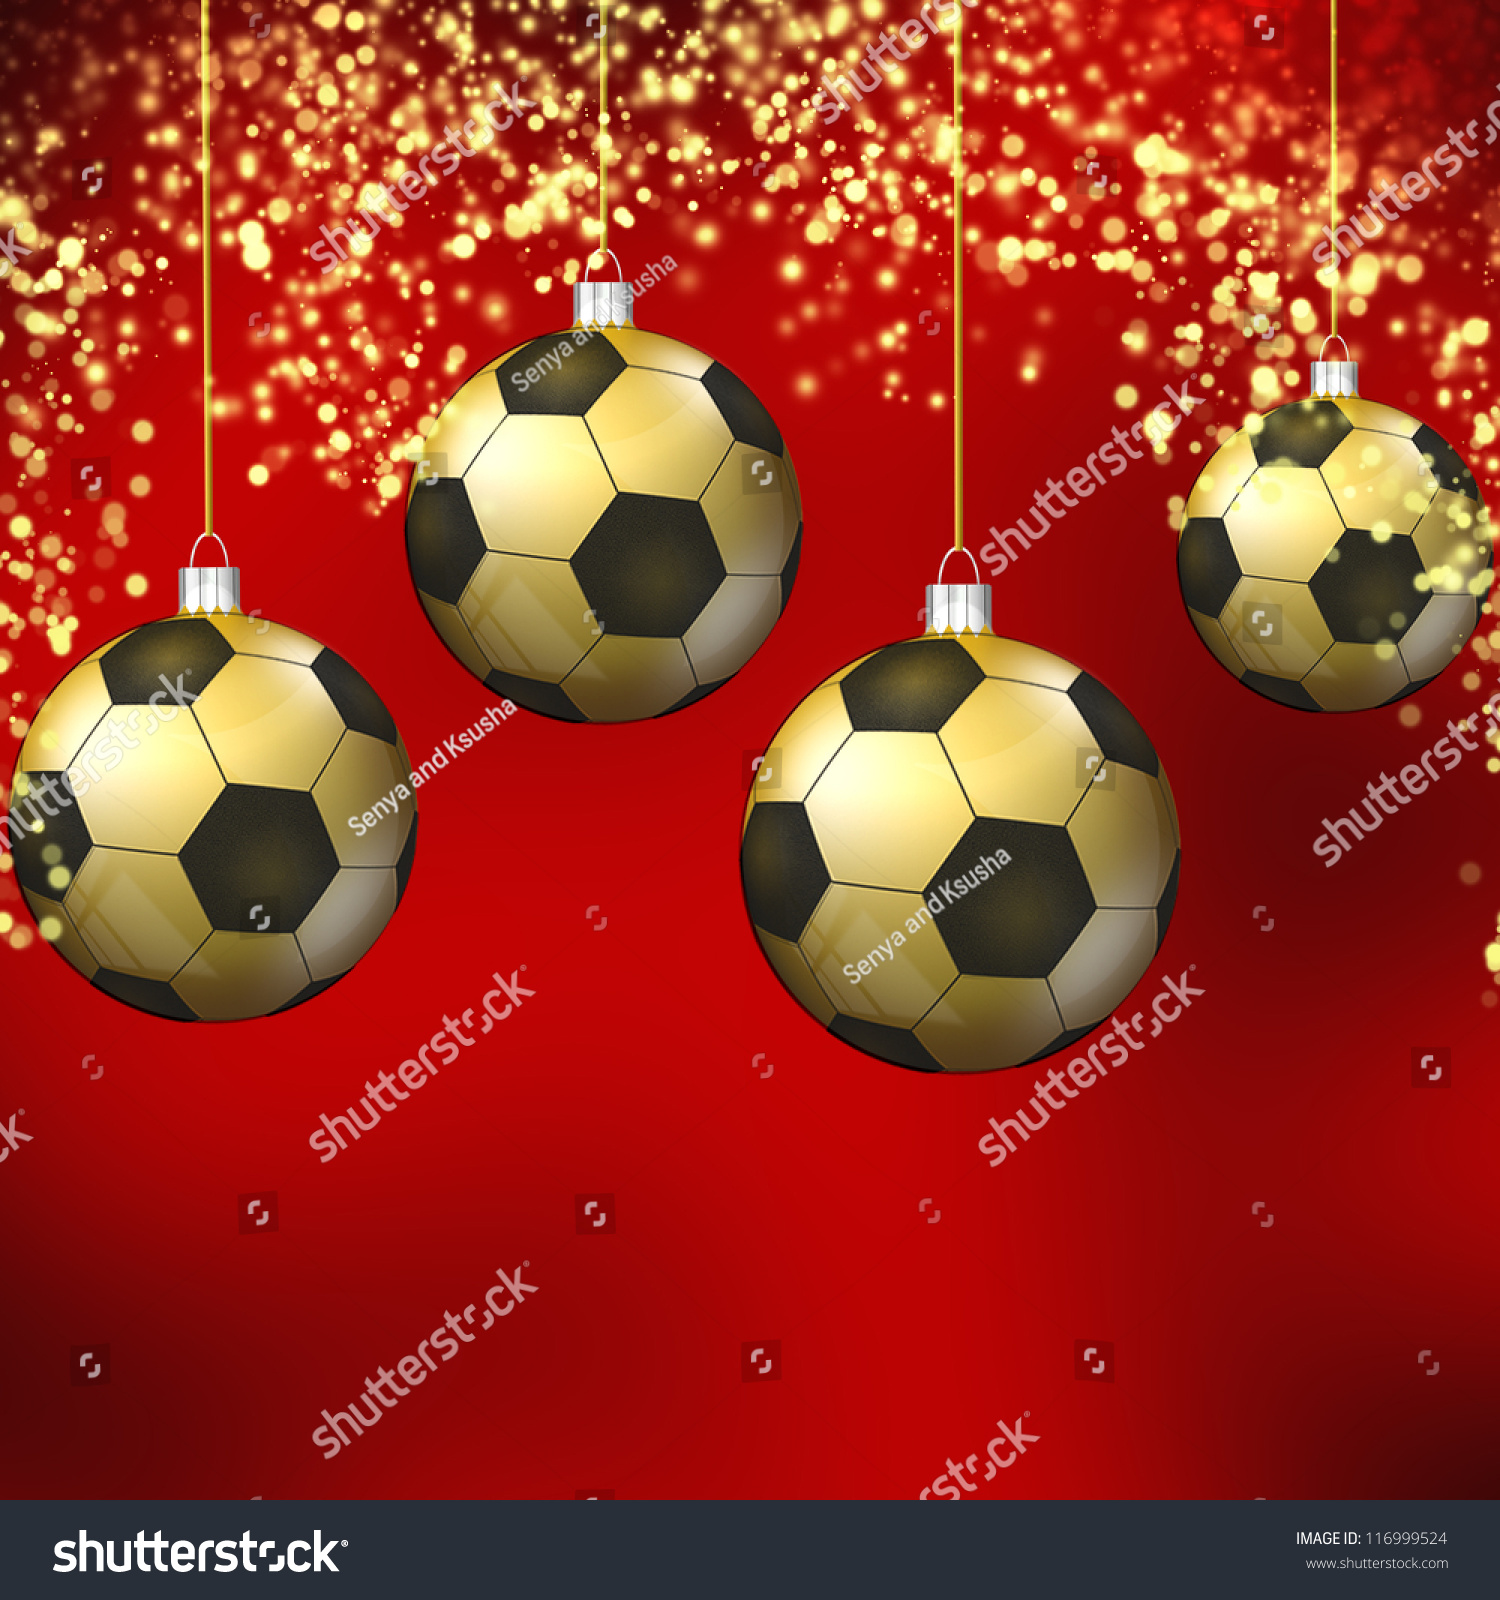 soccer christmas pictures christmas ideas 2018. Black Bedroom Furniture Sets. Home Design Ideas